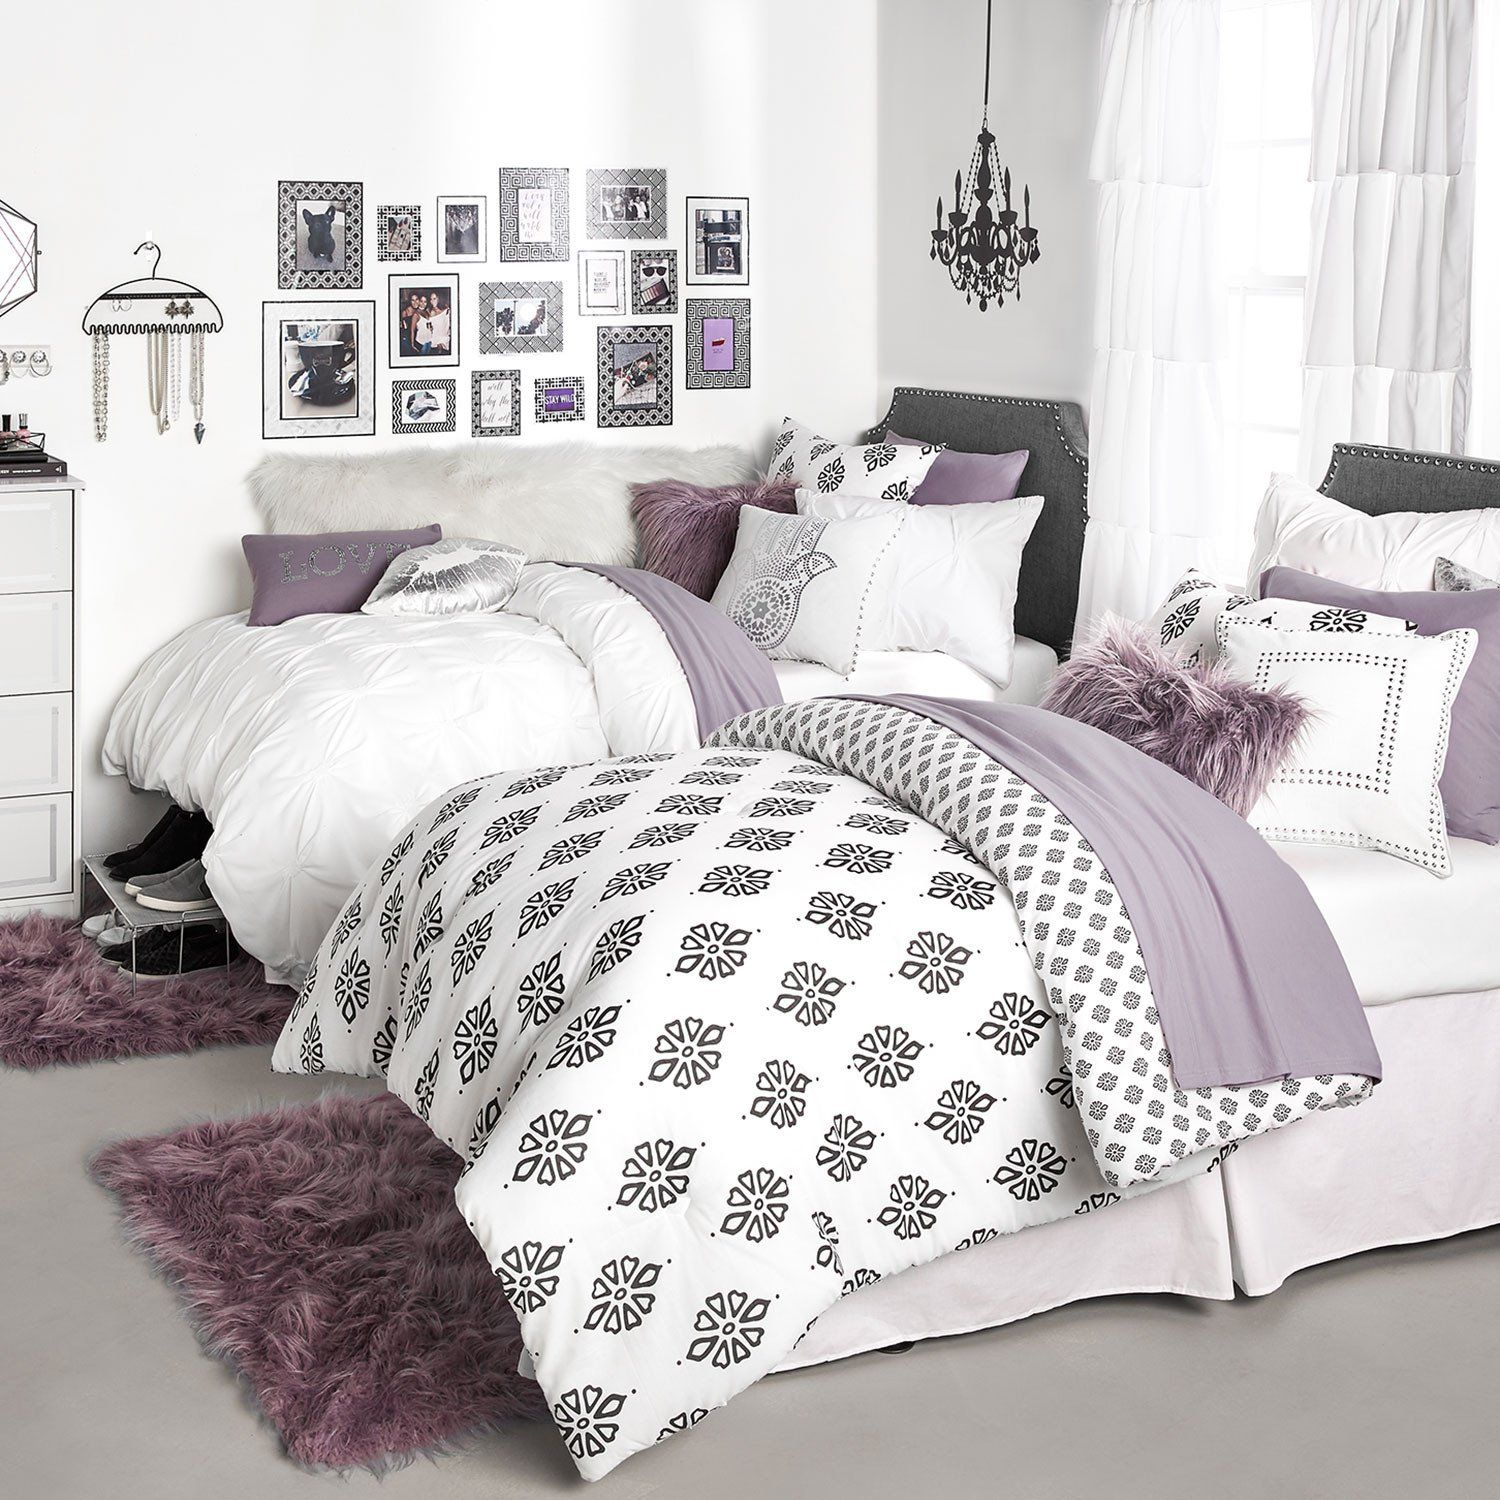 Amazing Dorm Room Ideas   College Room Decor   Dorm Design | Dormify Home Design Ideas